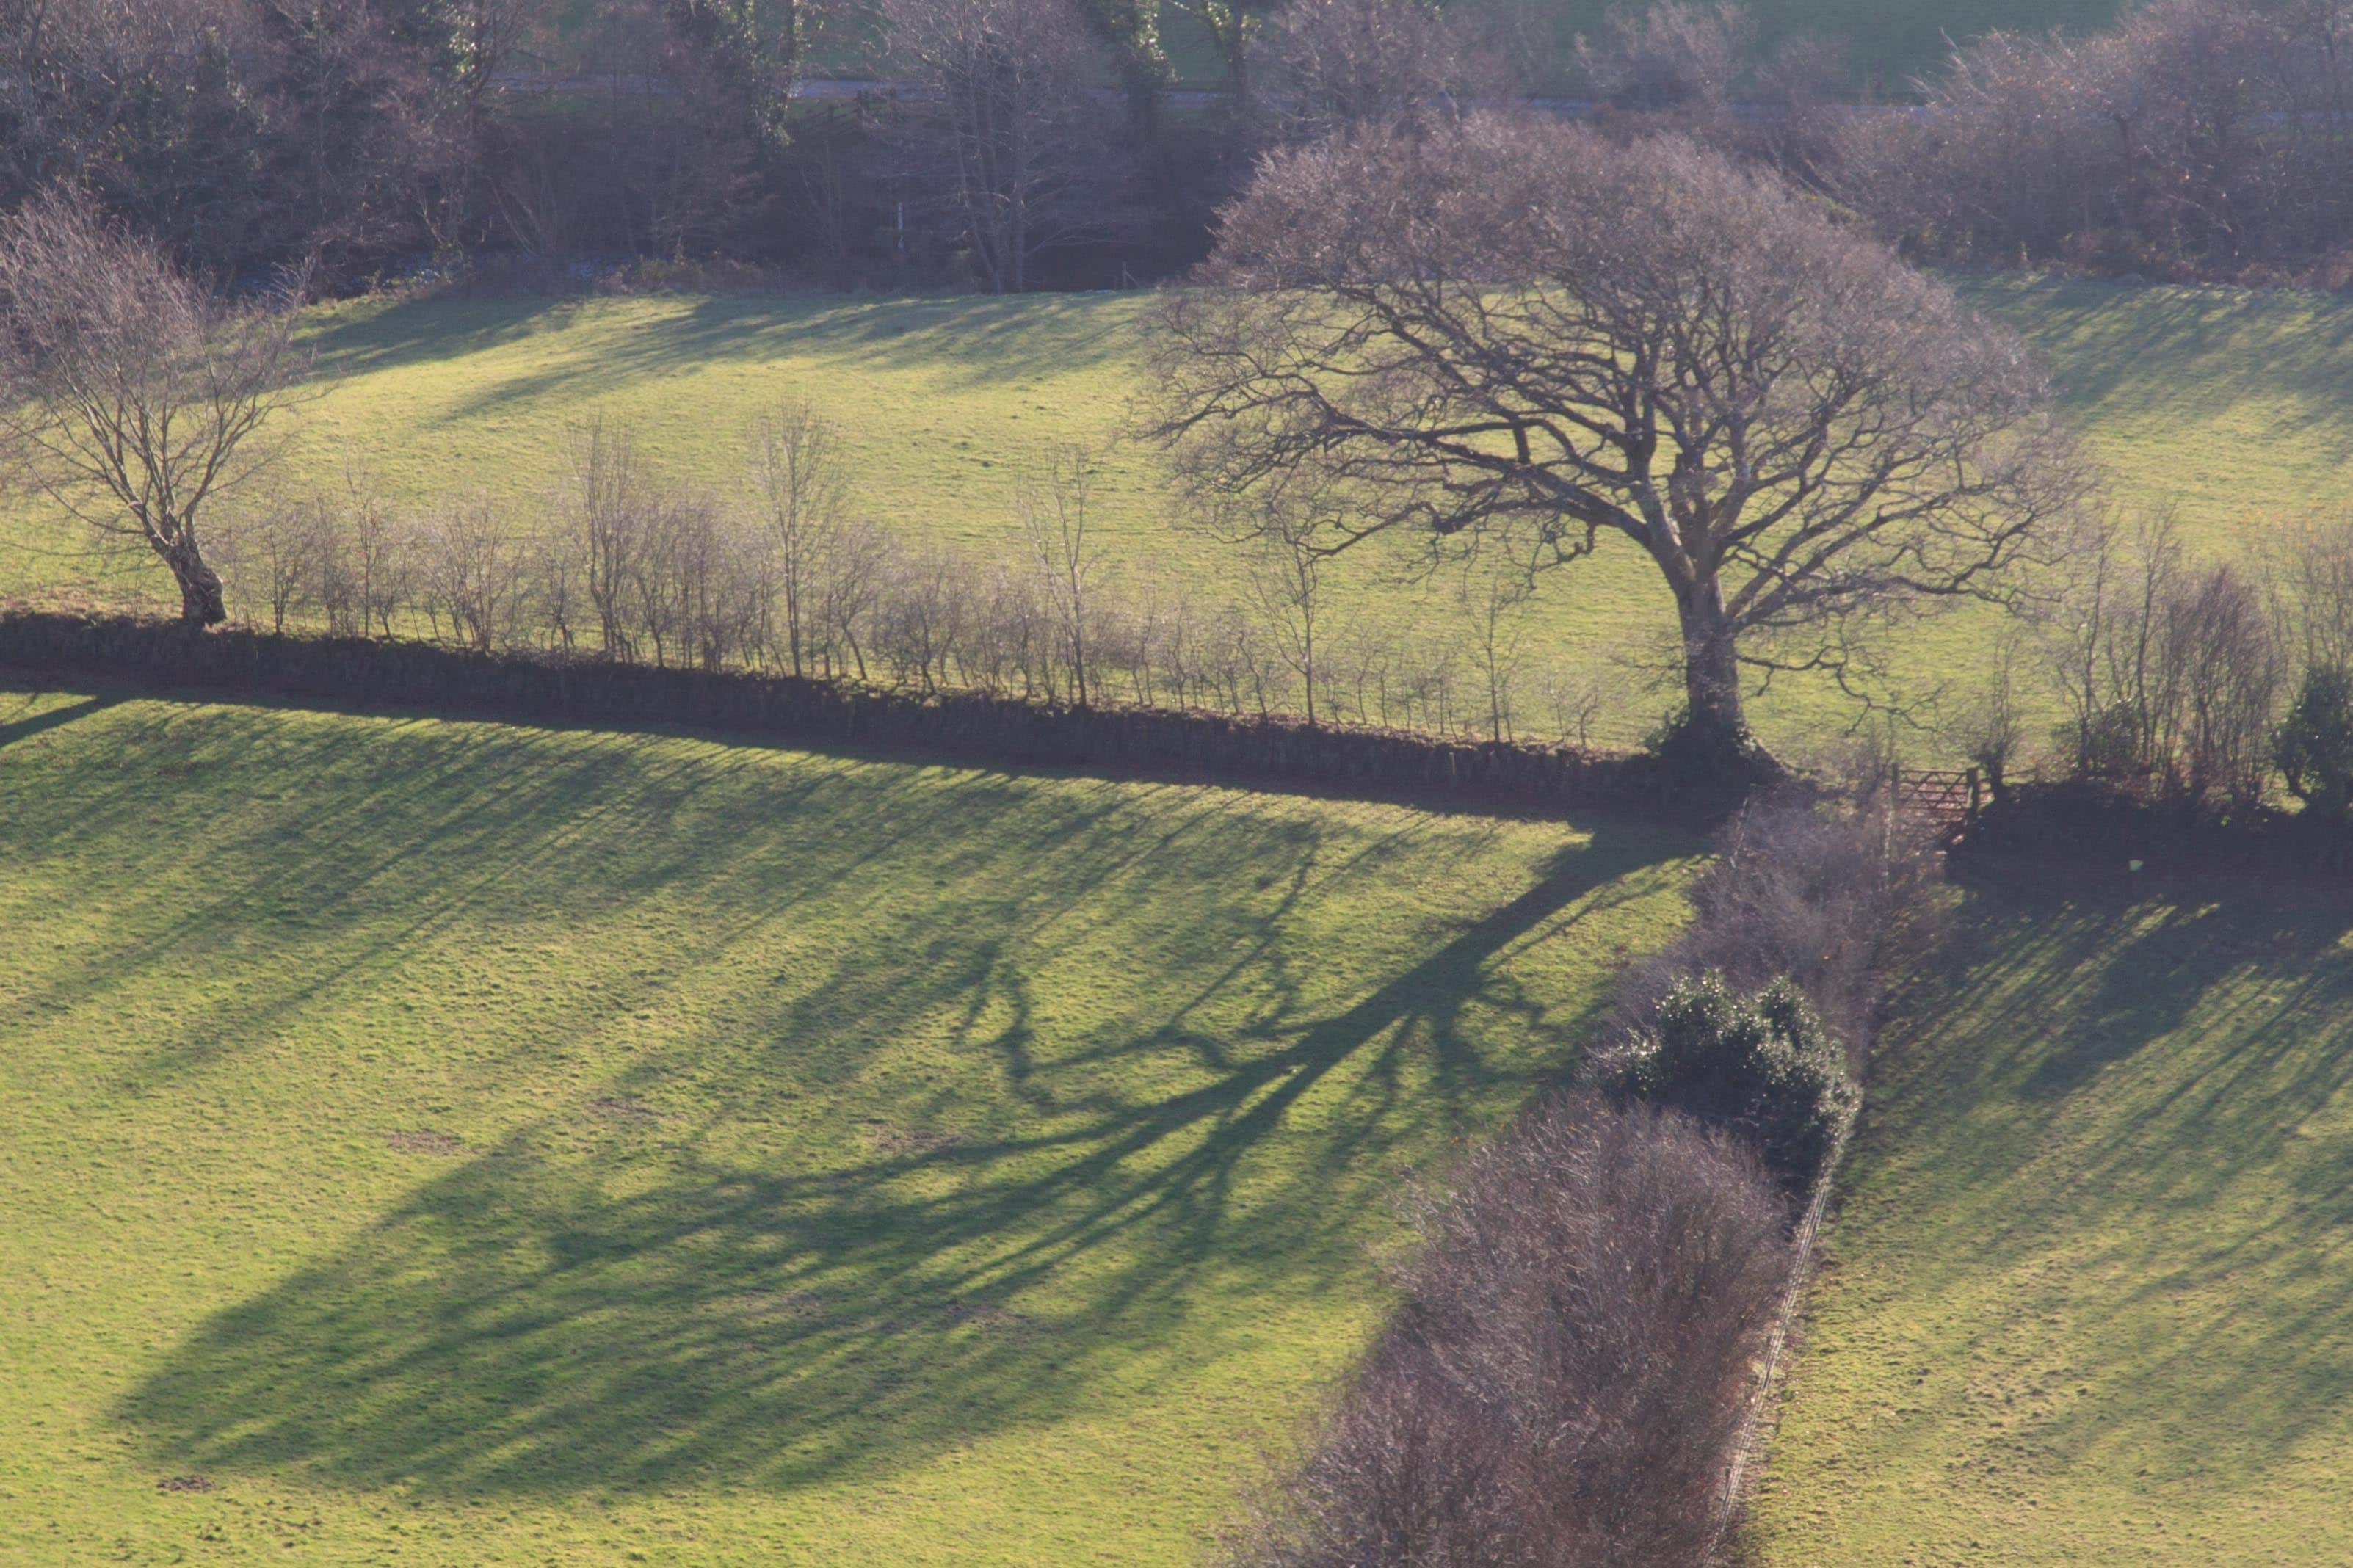 Trees and shadows  near Brendon, Exmoor. December 2014